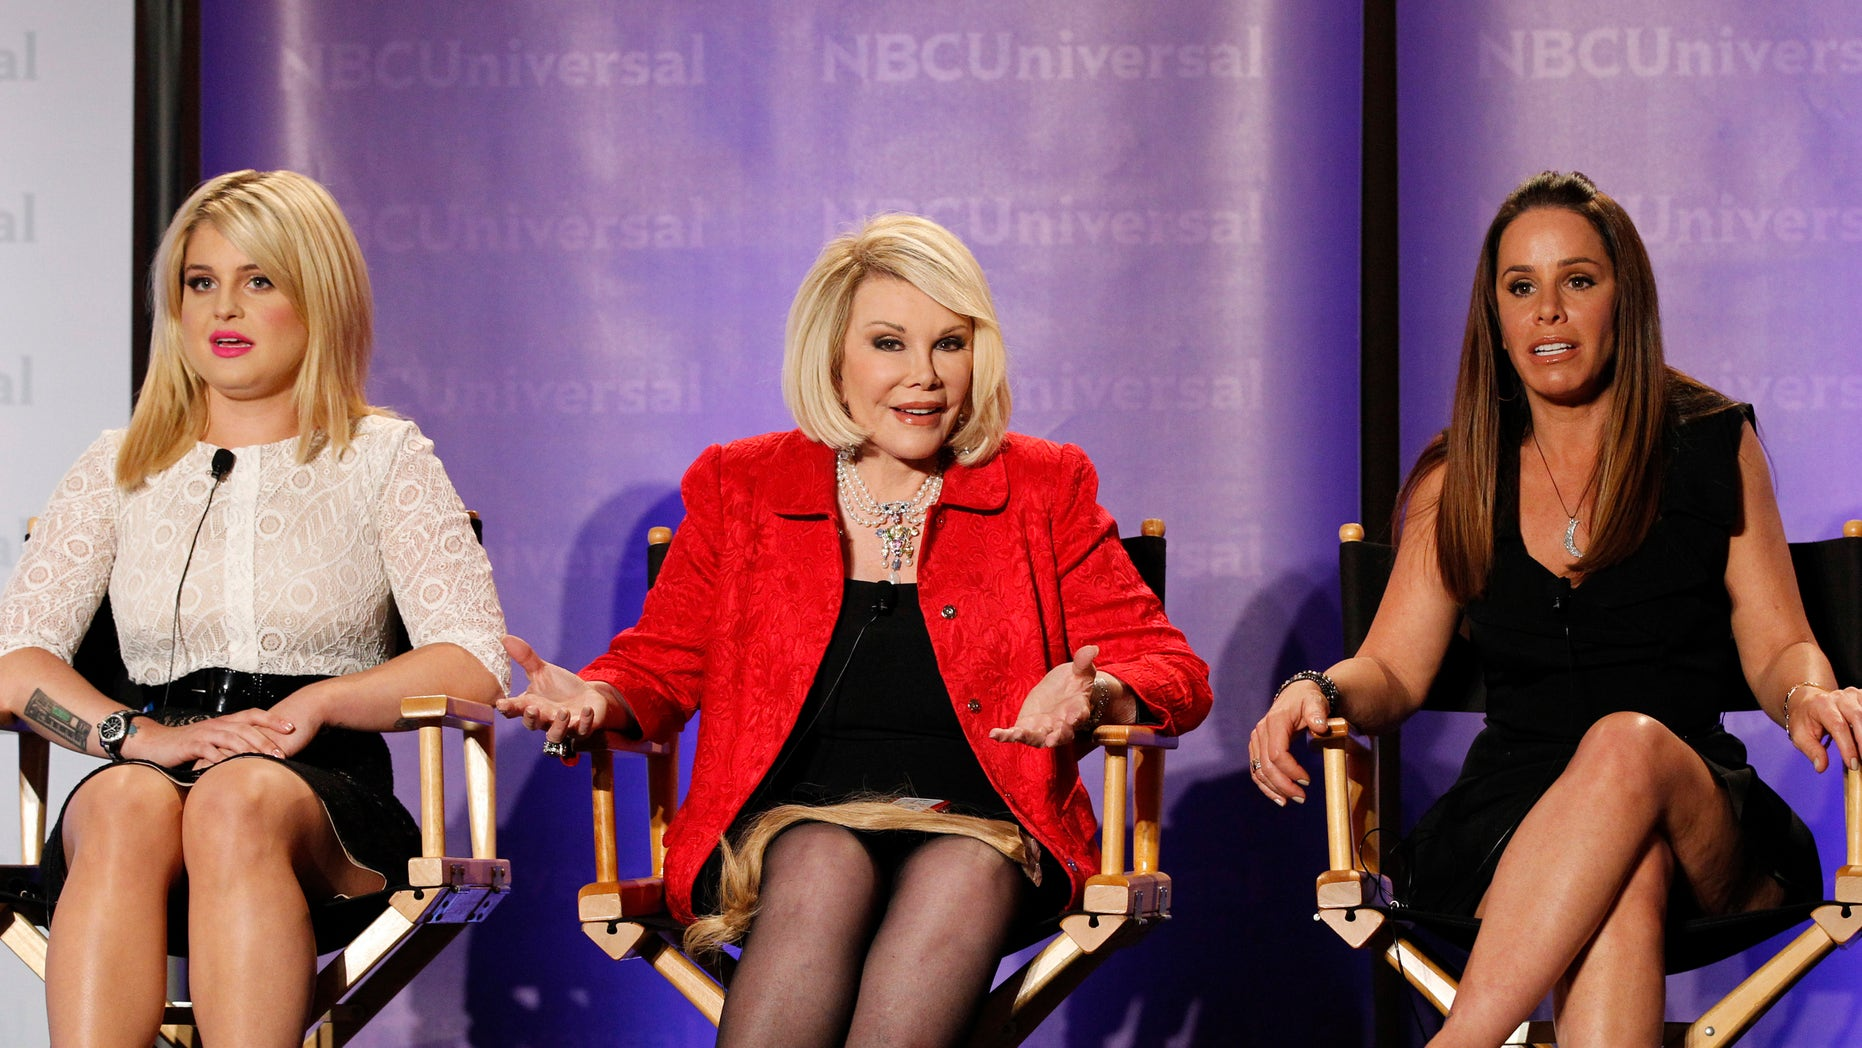 """April 15, 2011. Co-Executive producer Melissa Rivers (R), host Joan Rivers (C) and co-host Kelly Osbourne attend the E! panel for the television show """"Fashion Police"""" during the Television Critics Association summer press tour in Pasadena, California."""